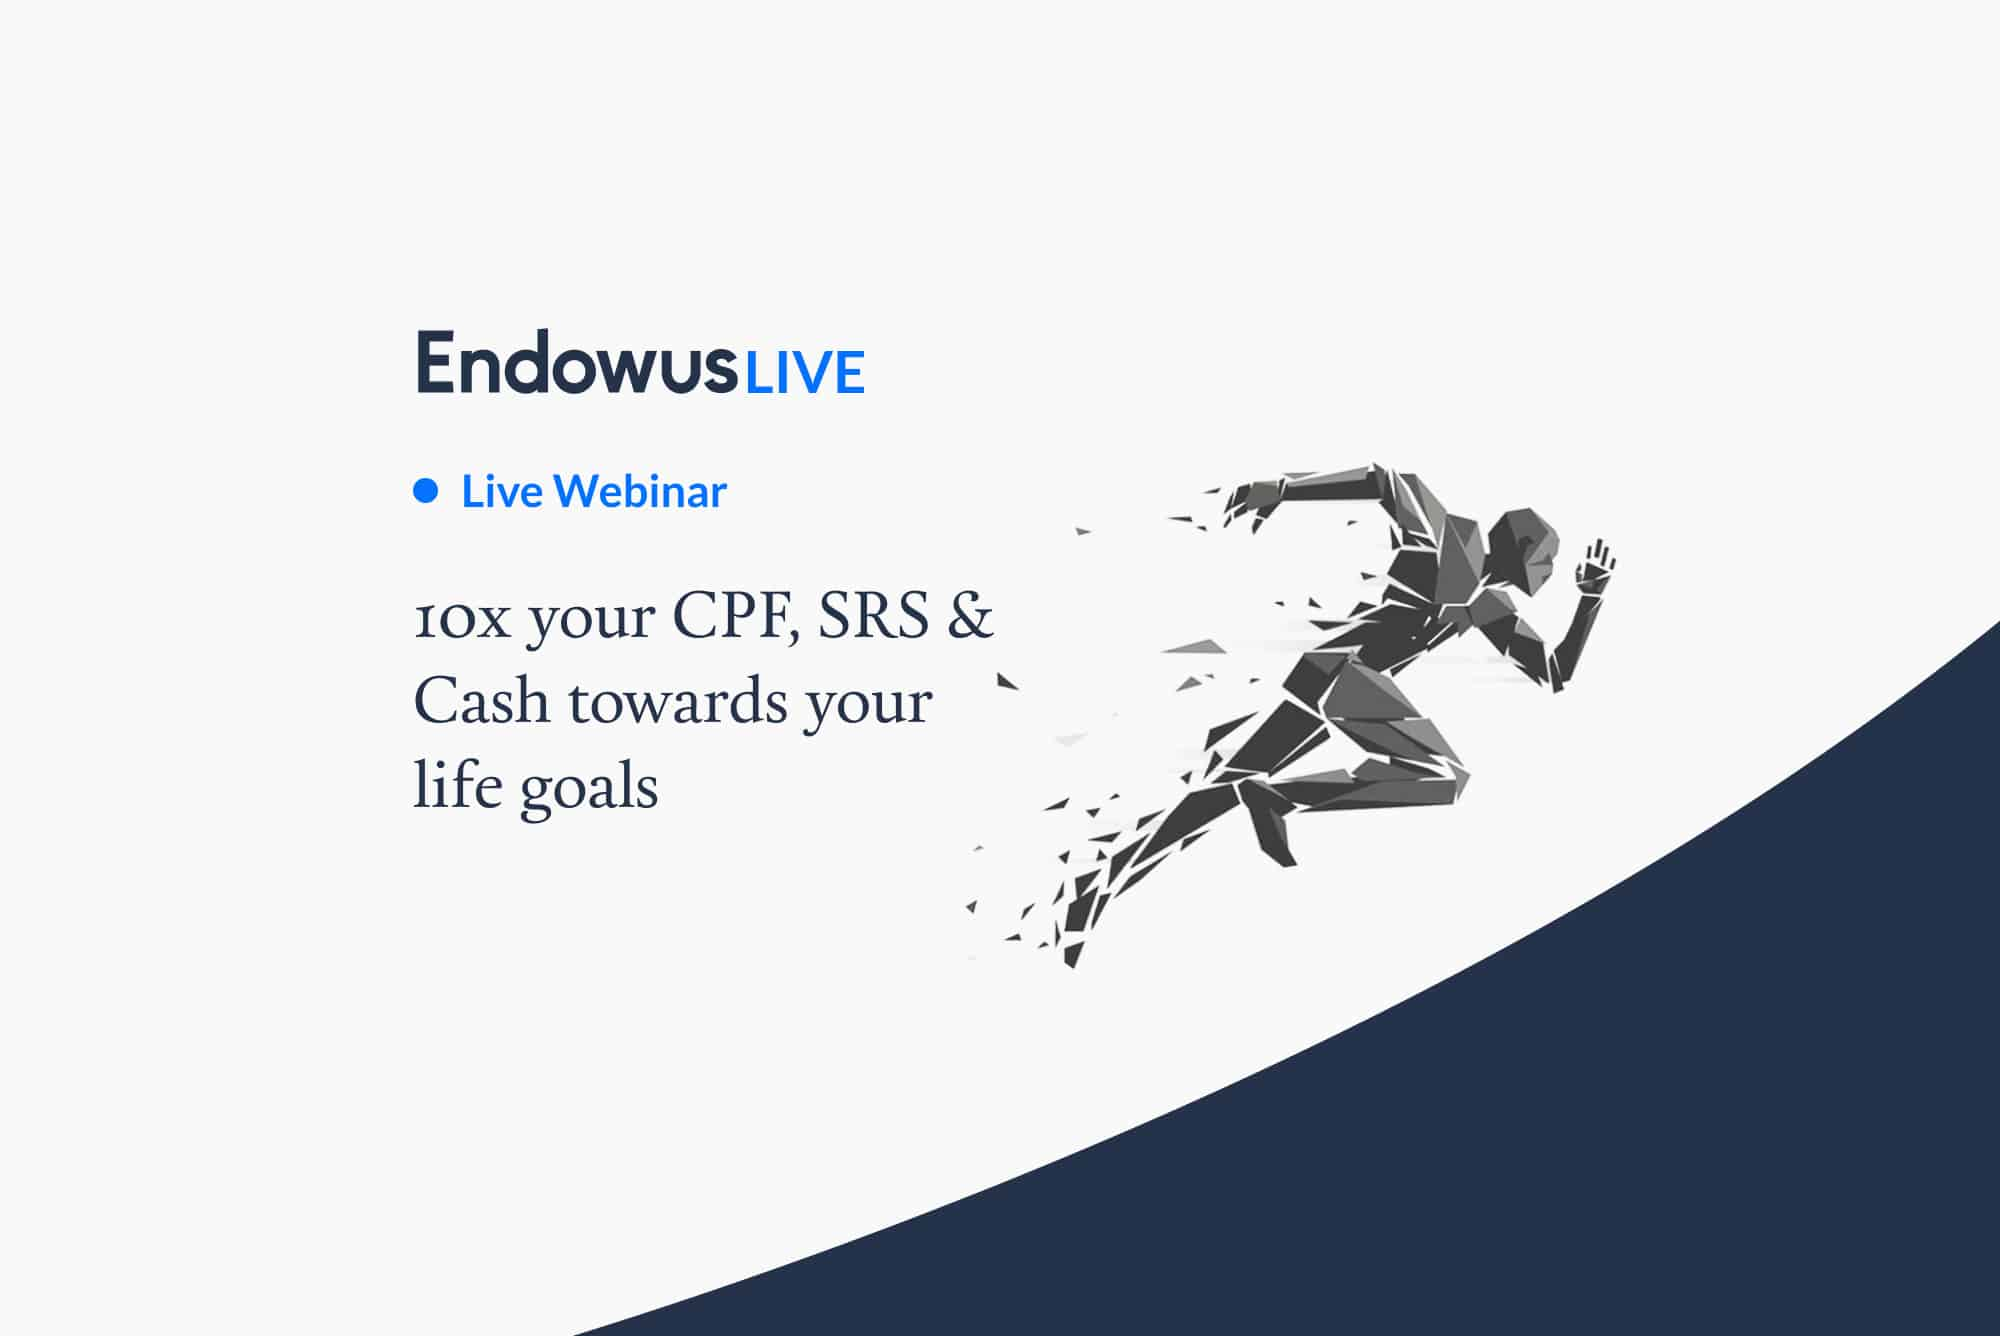 Webinar 10x your CPF, SRS & Cash towards your life goals